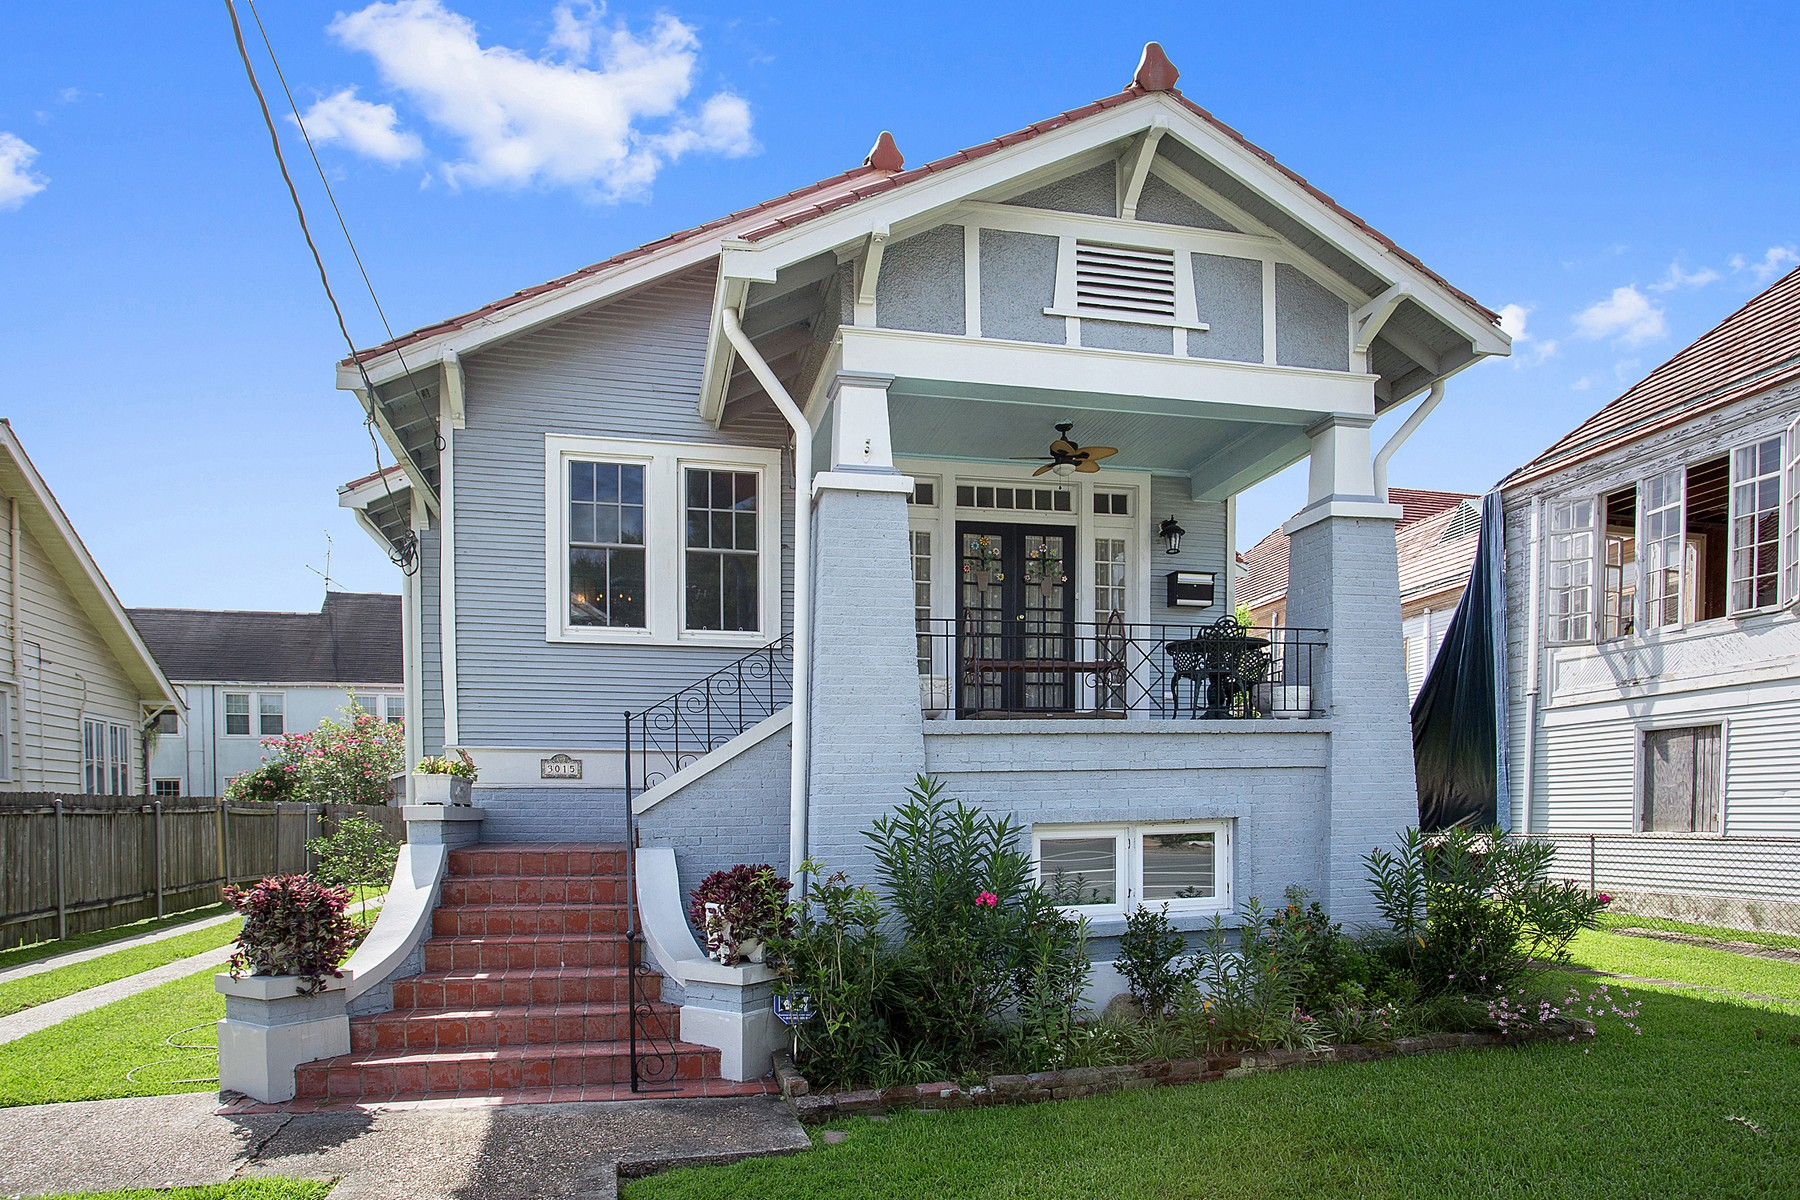 Single Family Home for Sale at 3015 Nashville Ave New Orleans, Louisiana 70125 United States